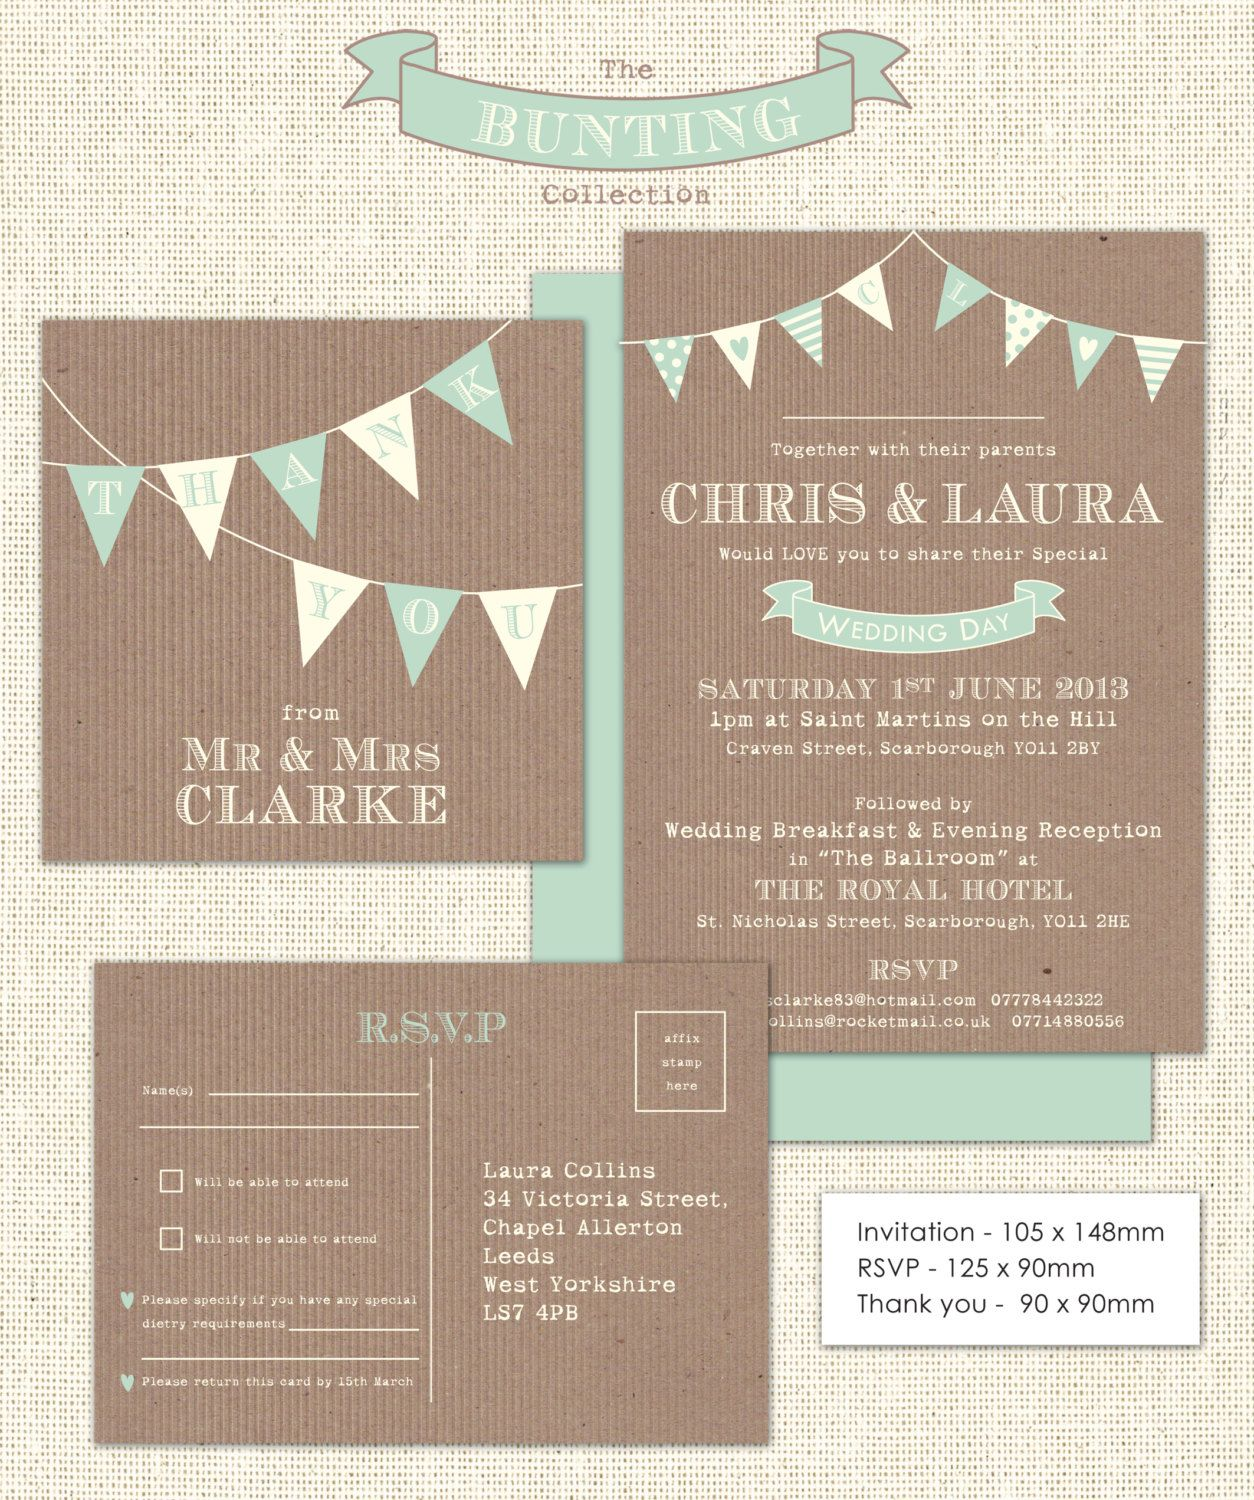 Downloadable Bunting Wedding Stationery set including invitation